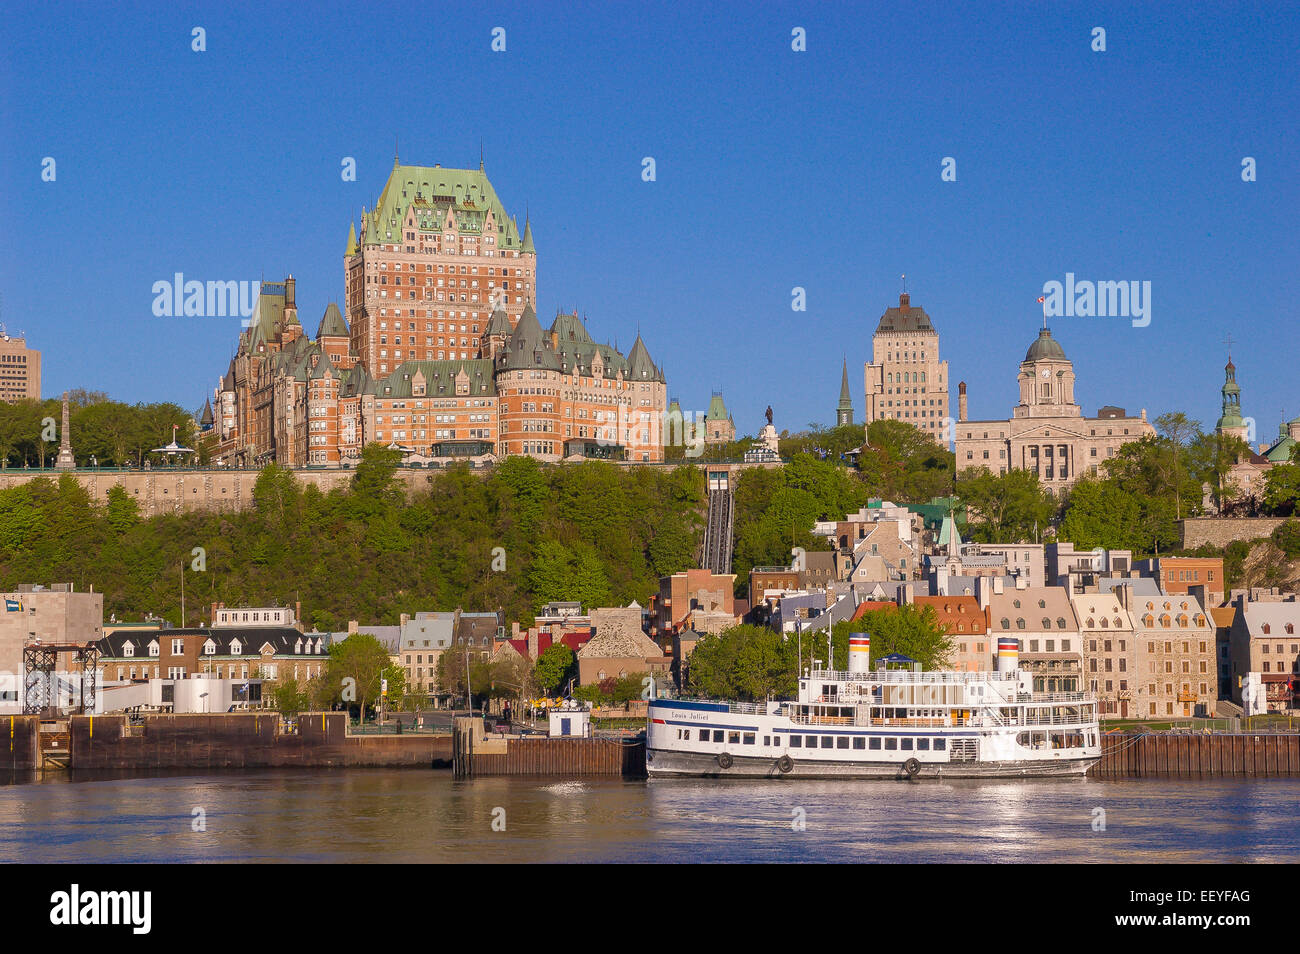 Quebec City Quebec Canada Le Chateau Frontenac Castle And Hotel Stock Photo Royalty Free